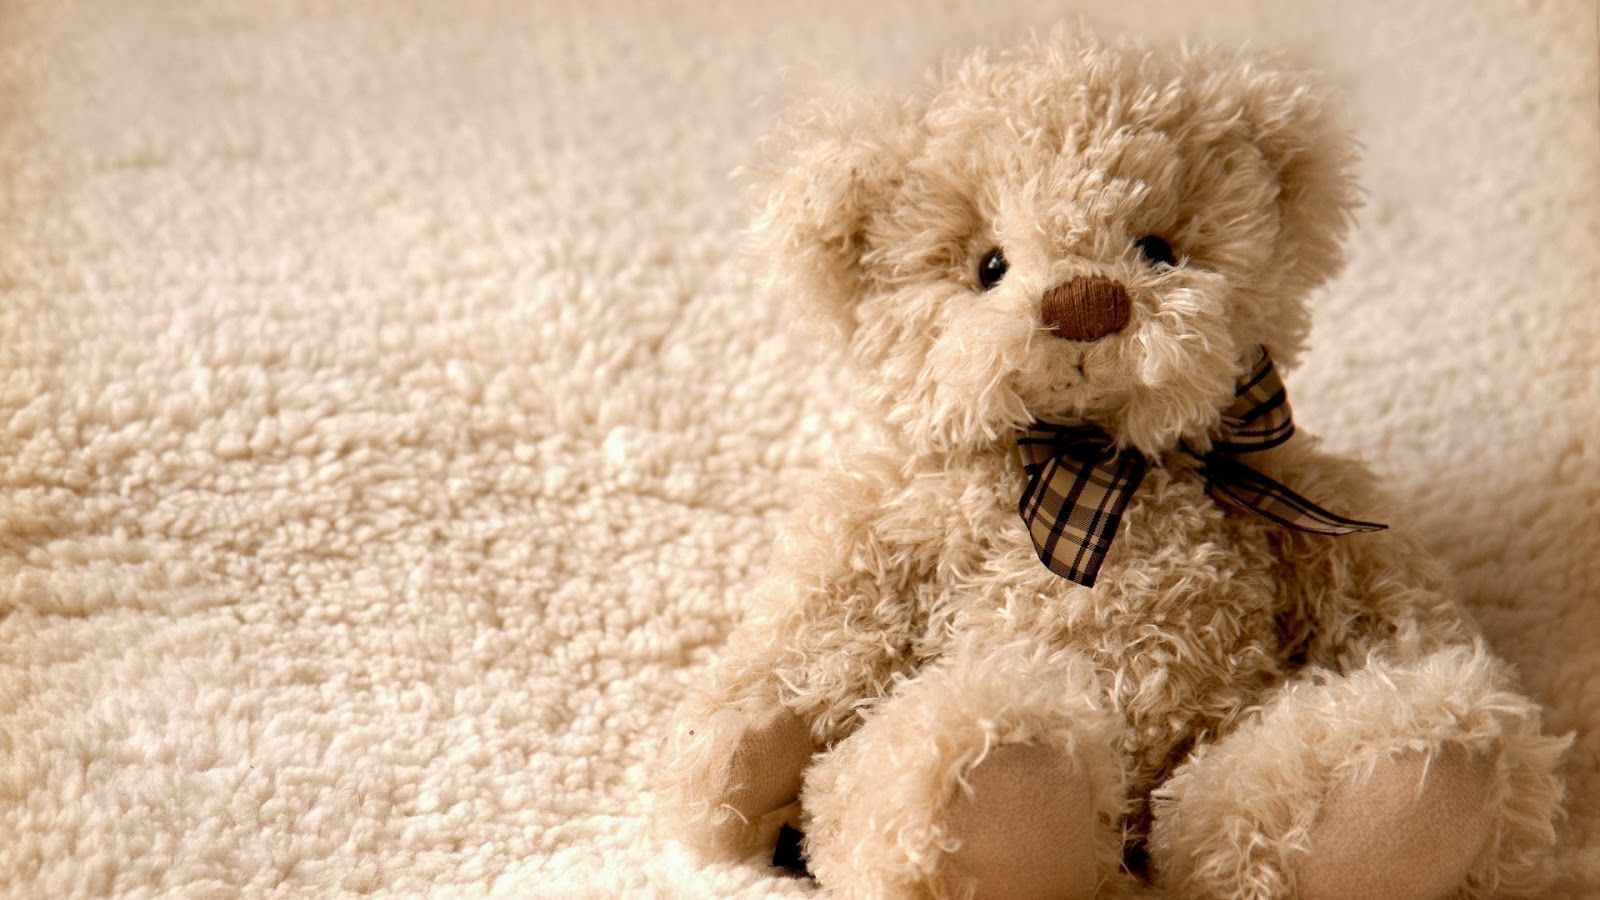 Happy teddy day images pictures hd wallpapers for facebook best cute teddy bear wallpapers my free wallpapers hub teddy bear picture wallpapers wallpapers voltagebd Gallery